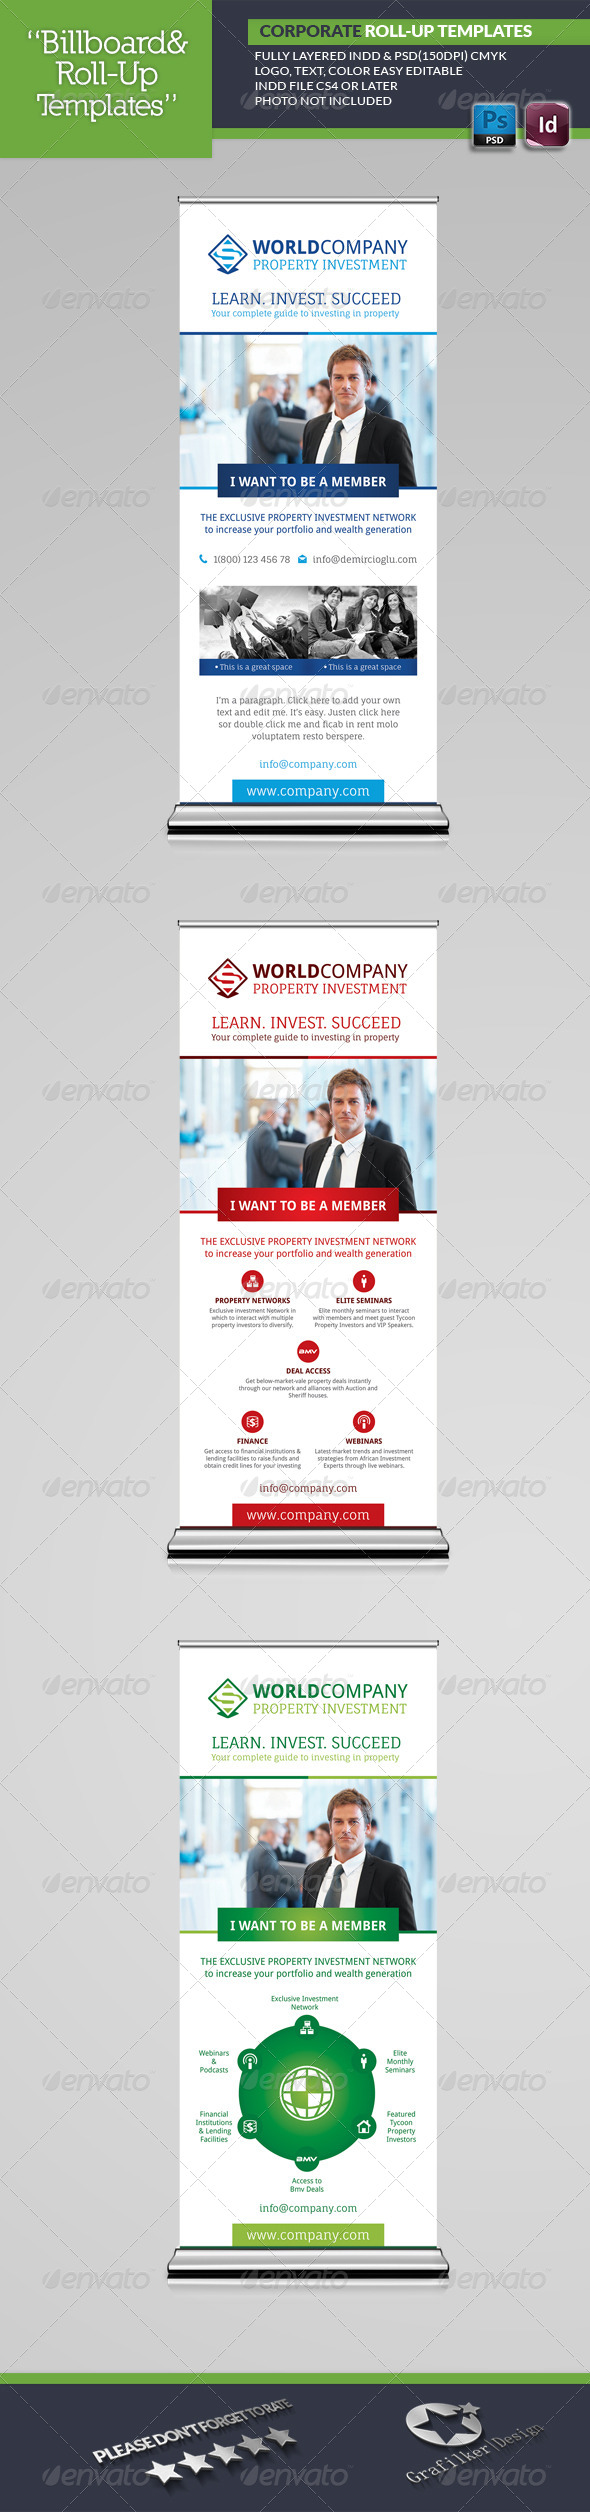 GraphicRiver Corporate Roll-Up Templates 6899021